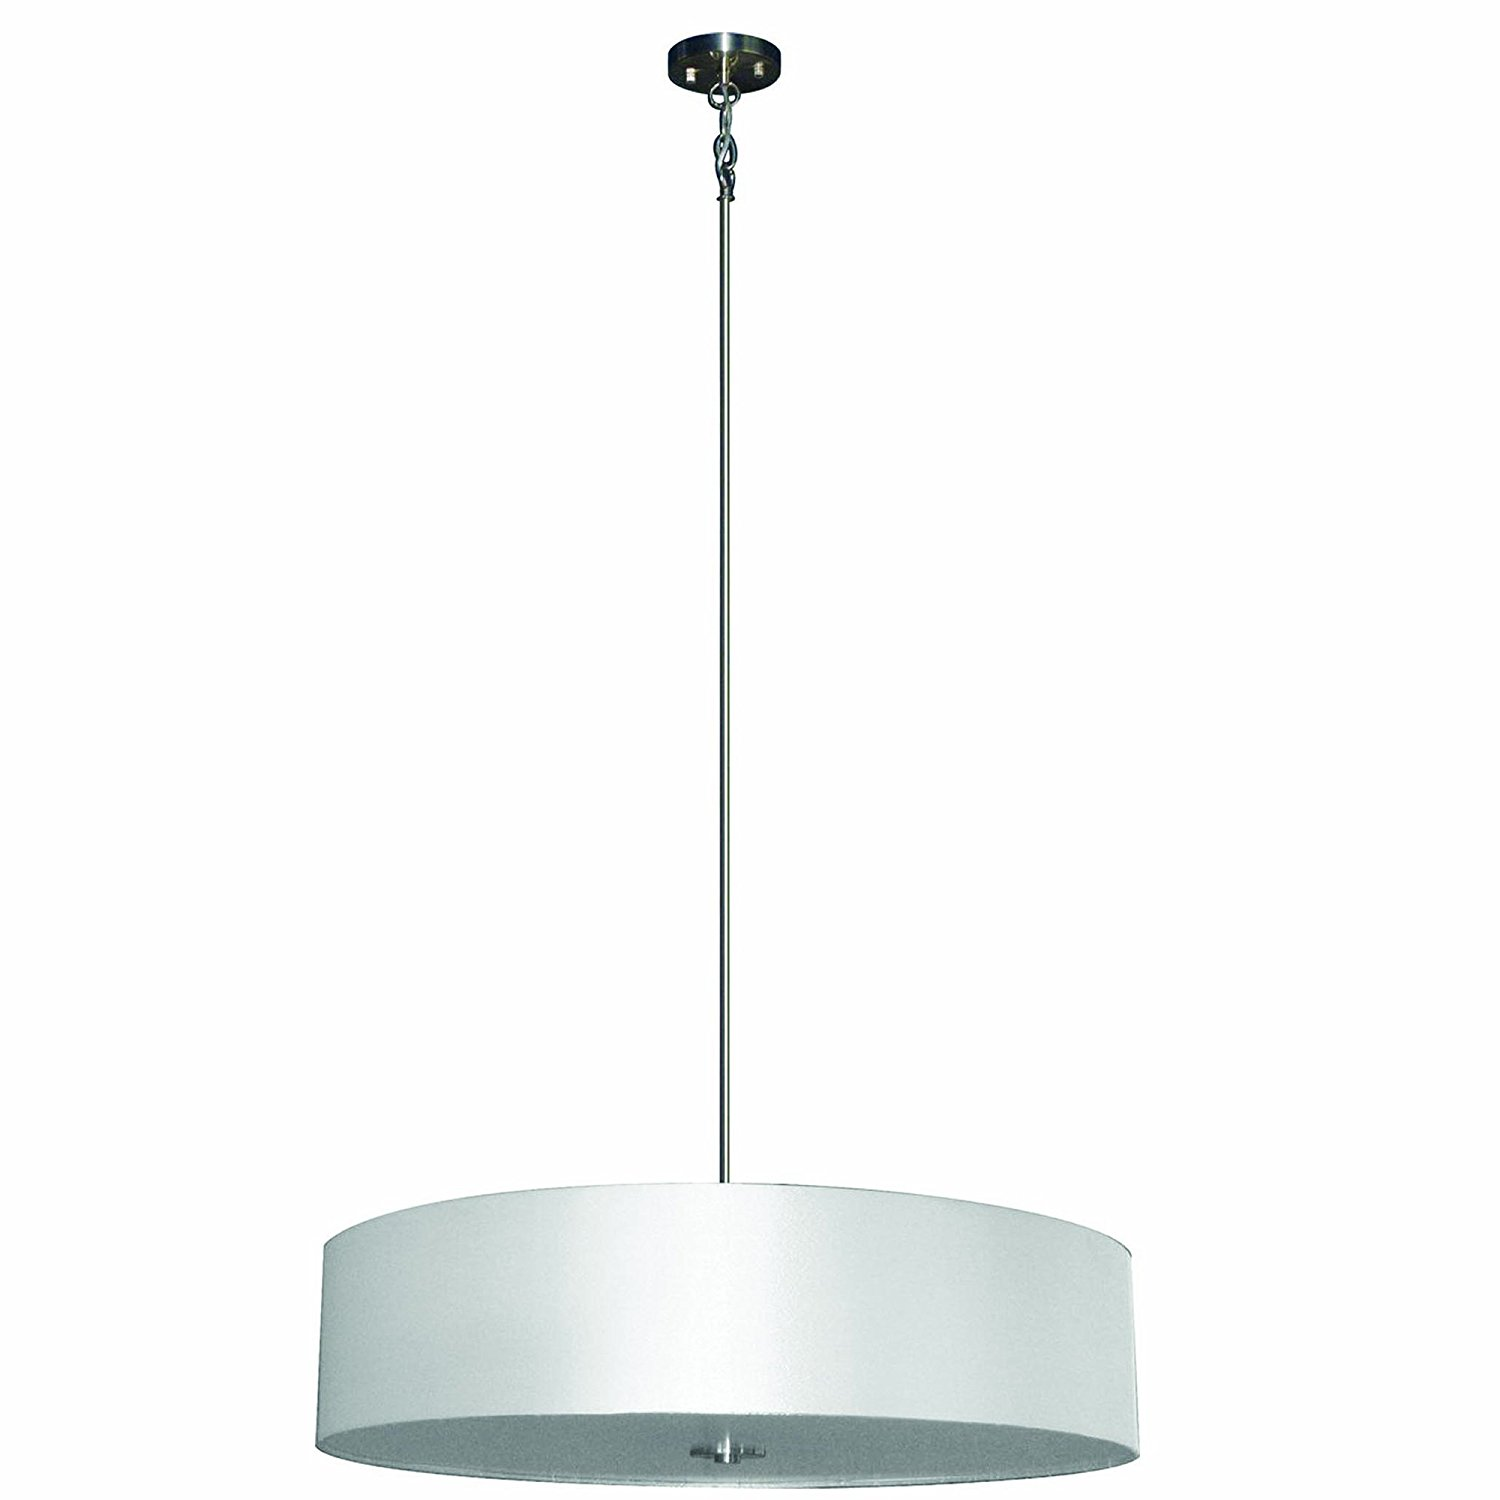 Yosemite Home Decor SH3007-5P-PWSS 5-Lights Pendant with Pristine White Shade, Satin Steel